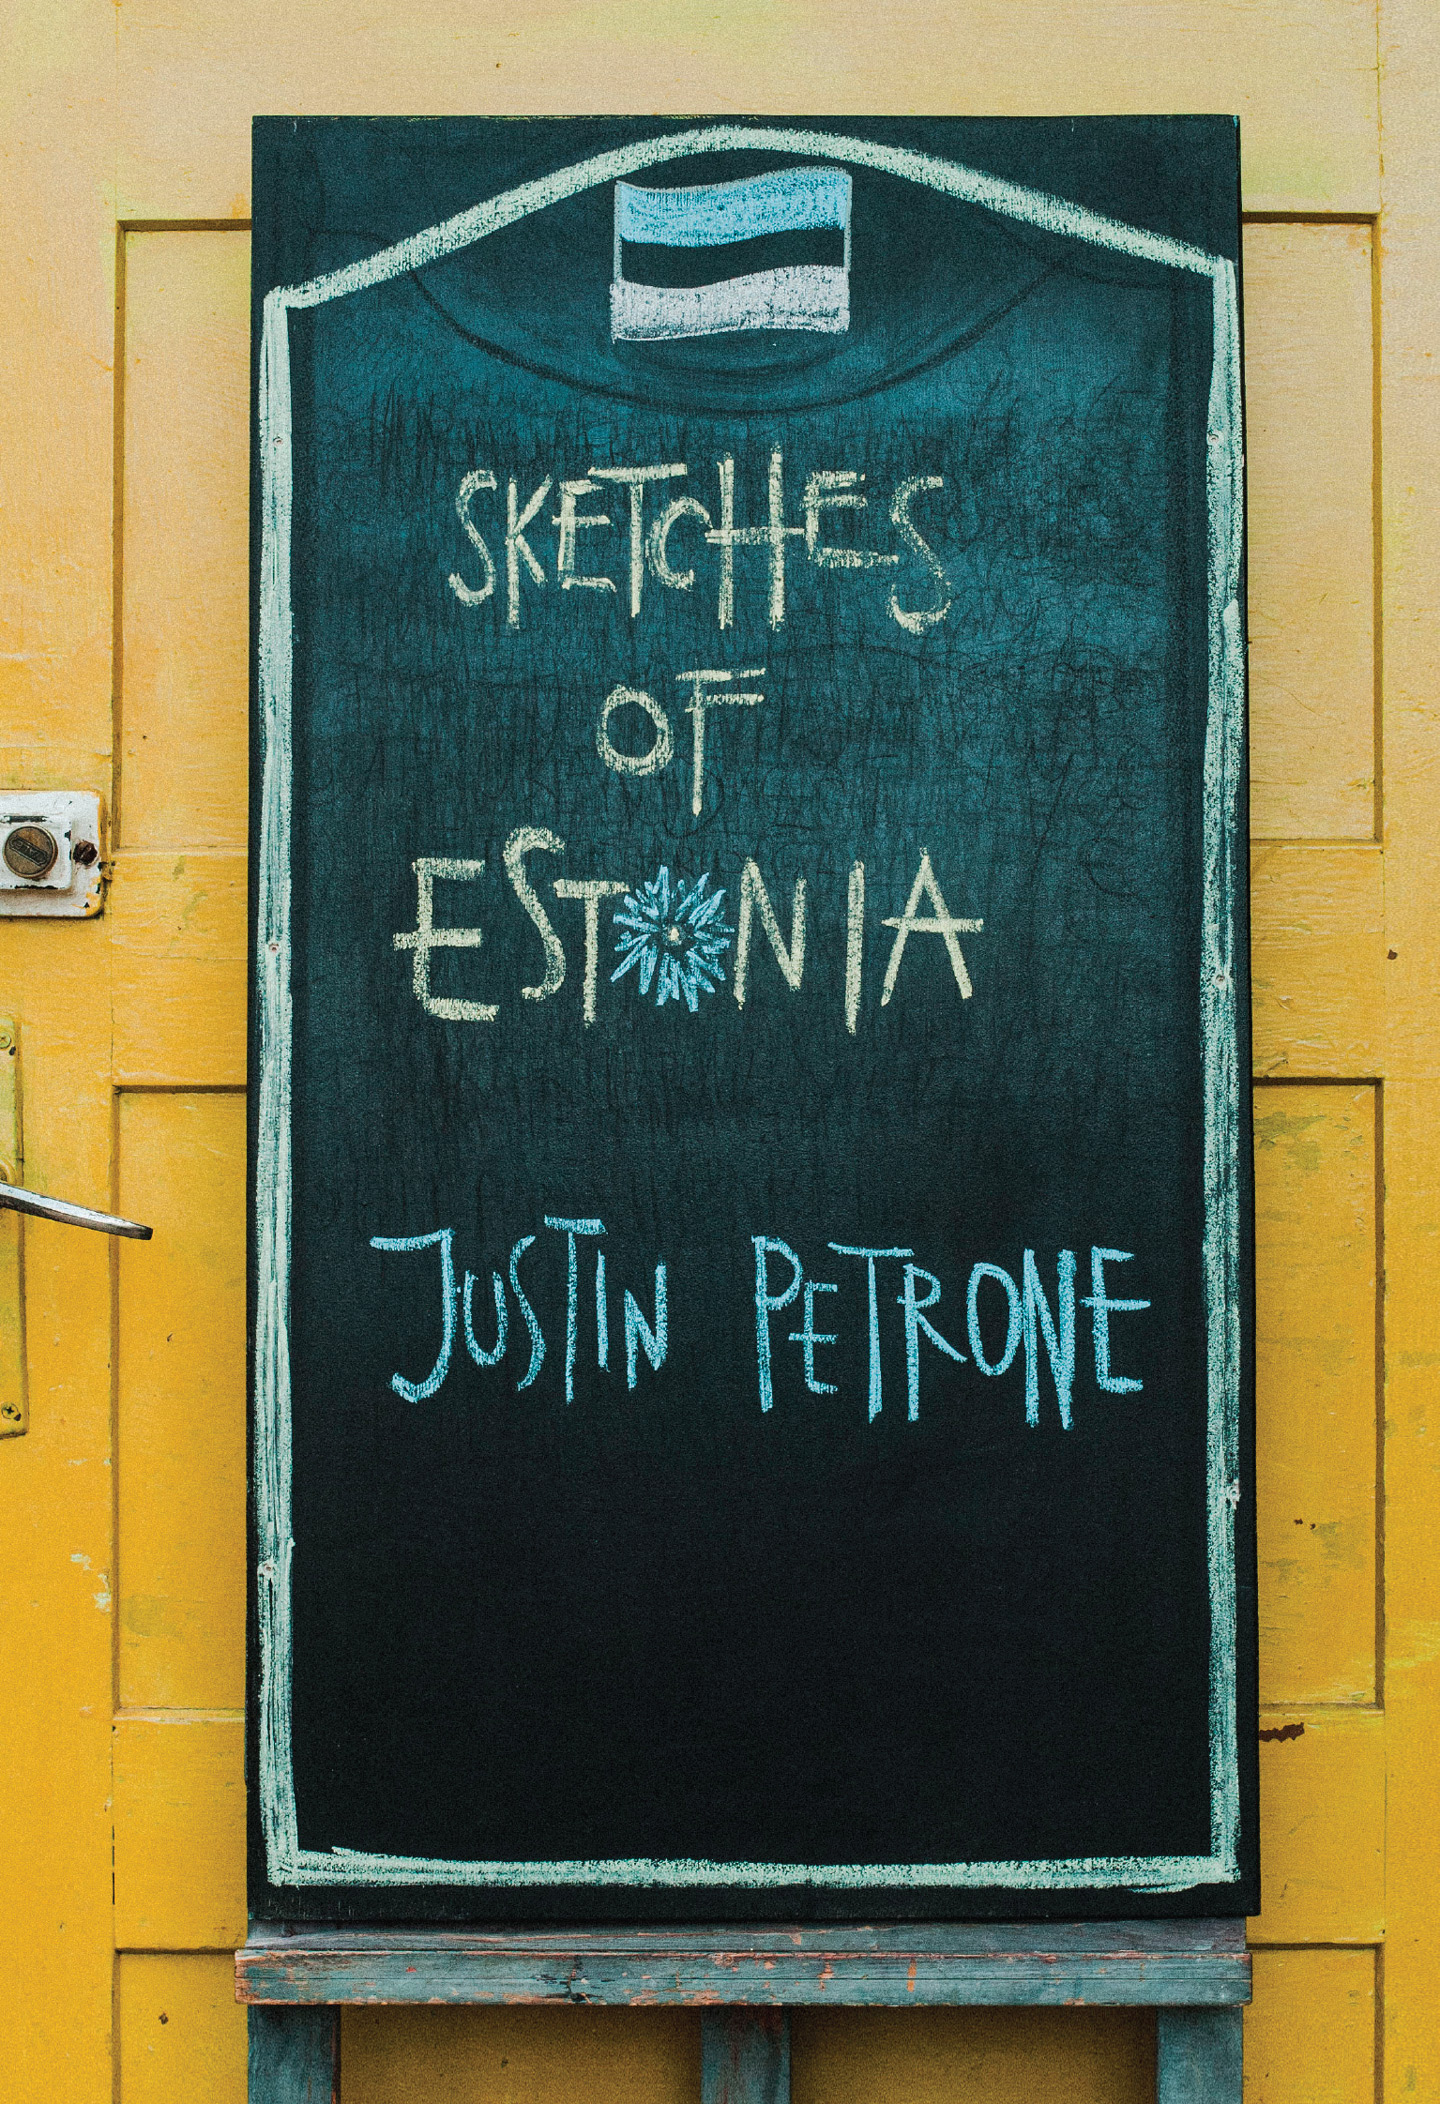 Justin Petrone Sketches of Estonia кружка loraine овал 320 мл